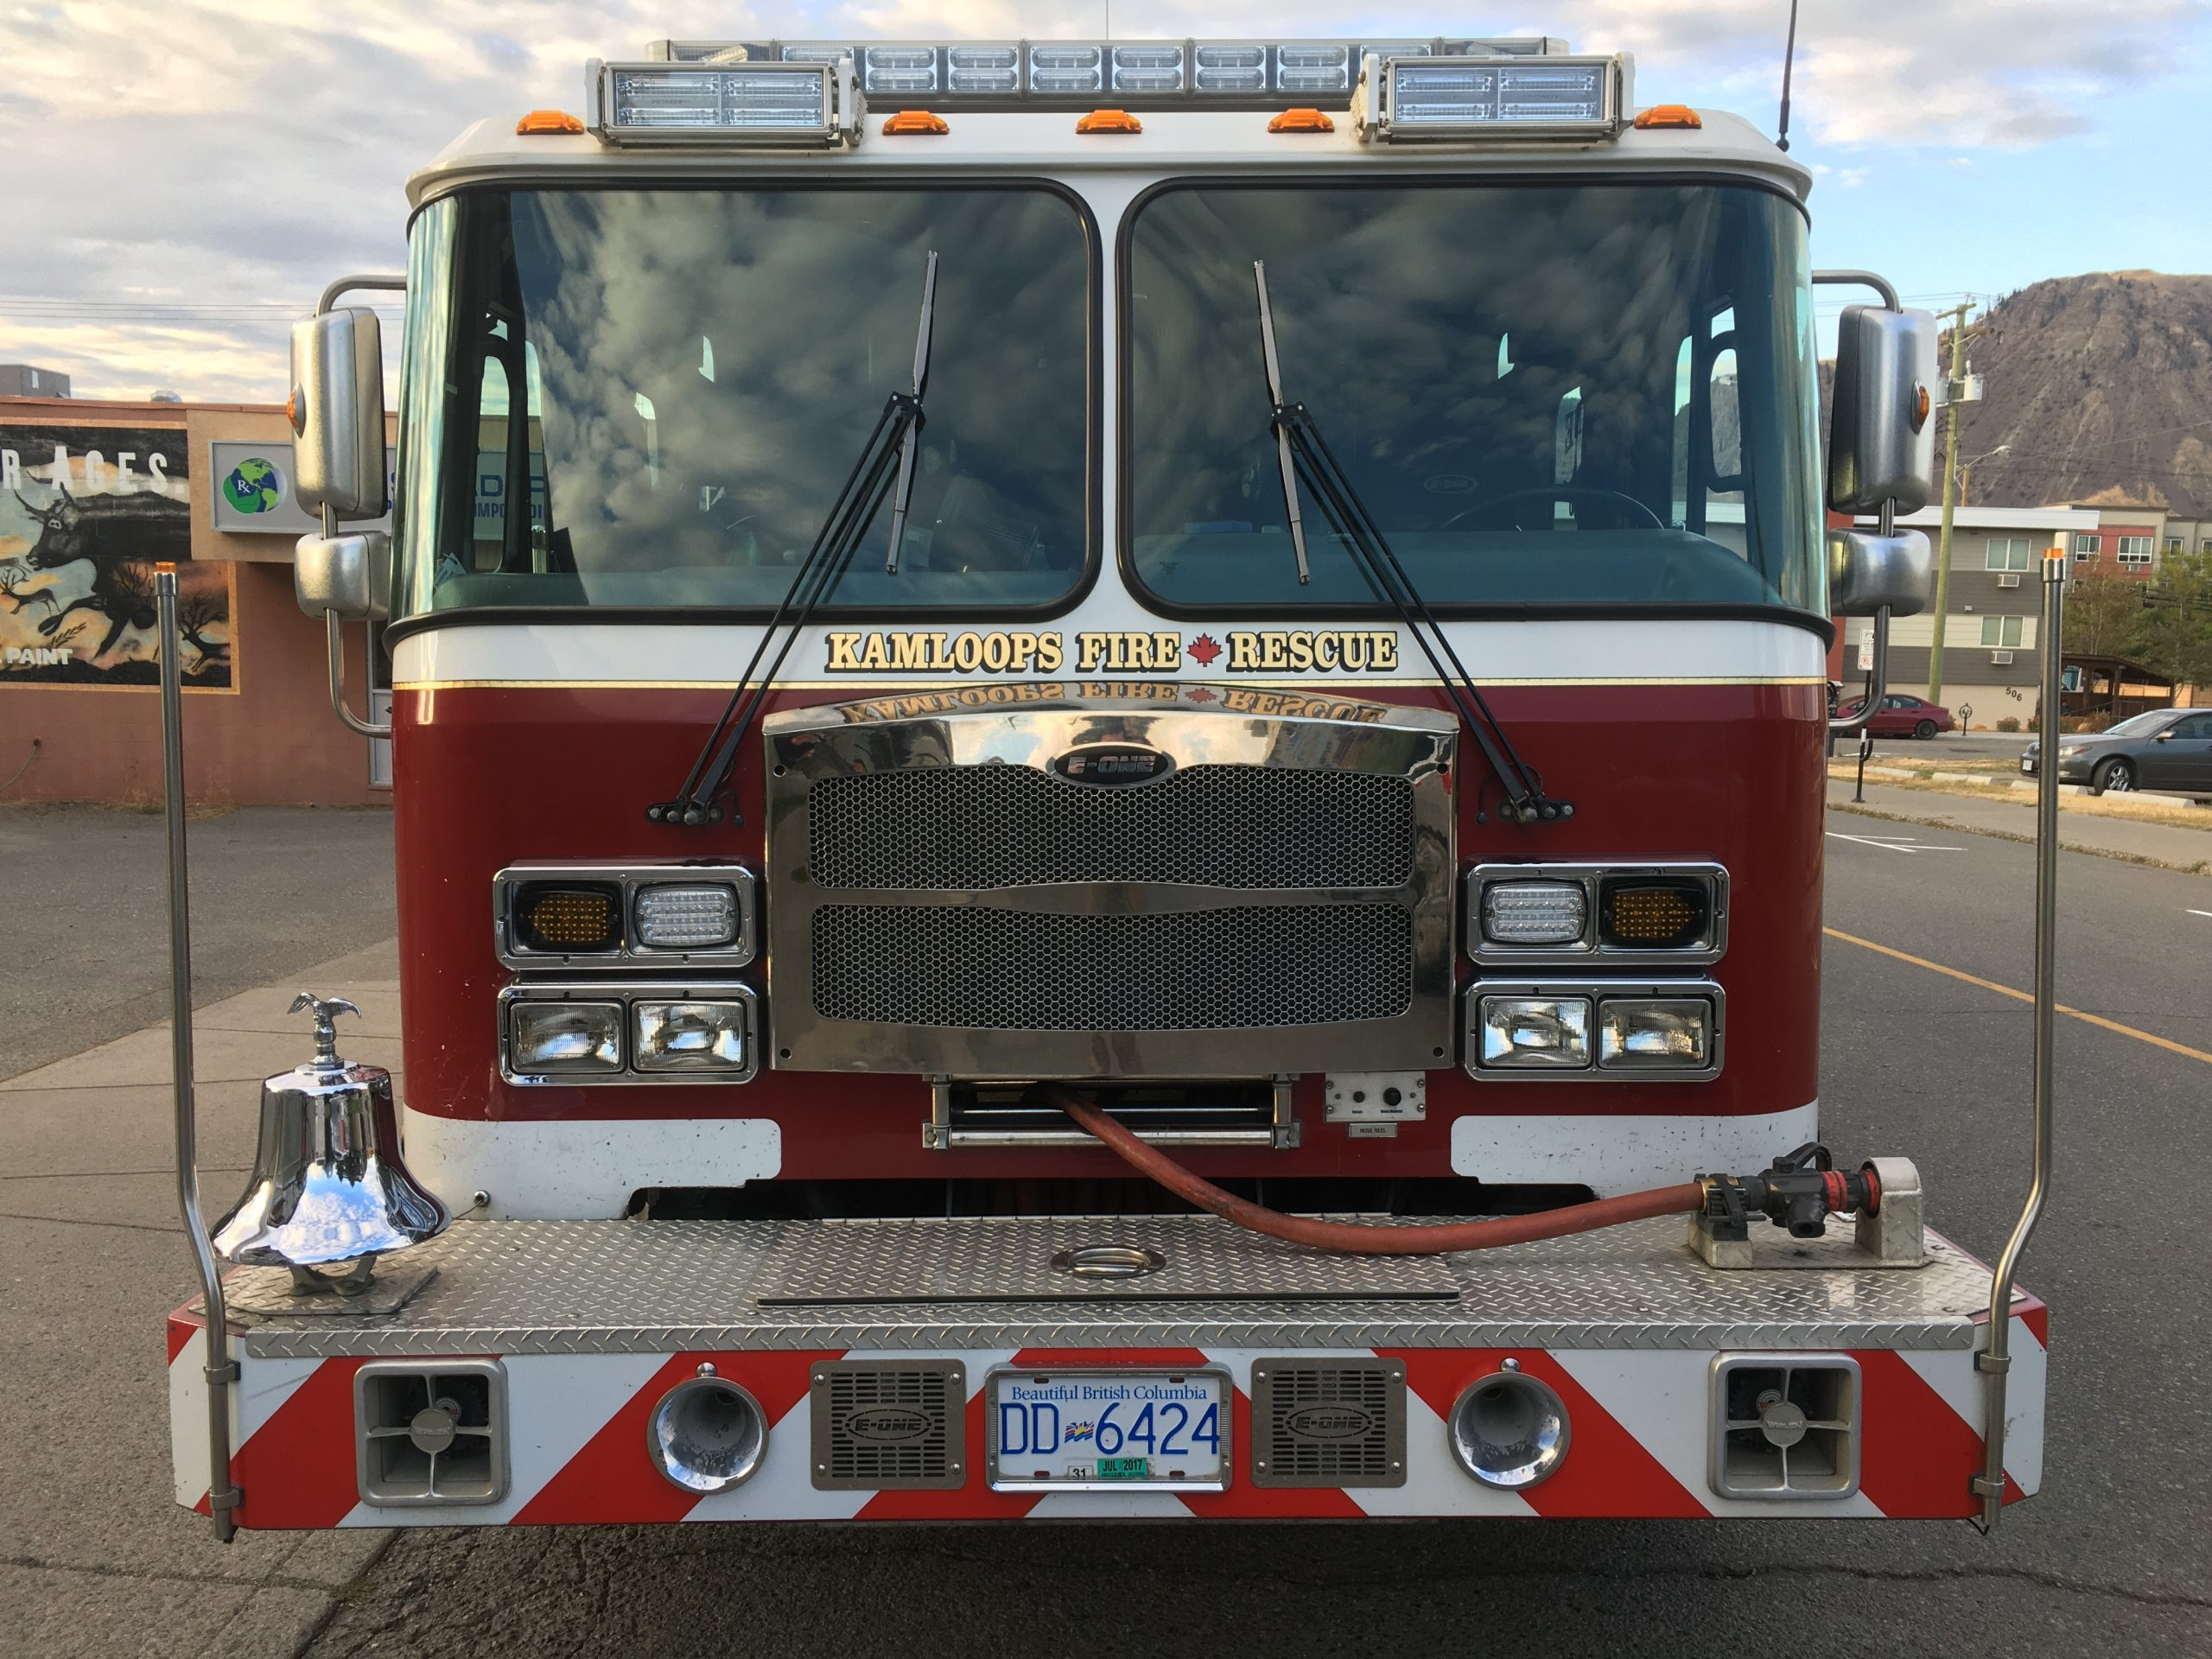 Firefighters respond to another fire in the Lac du Bois grasslands